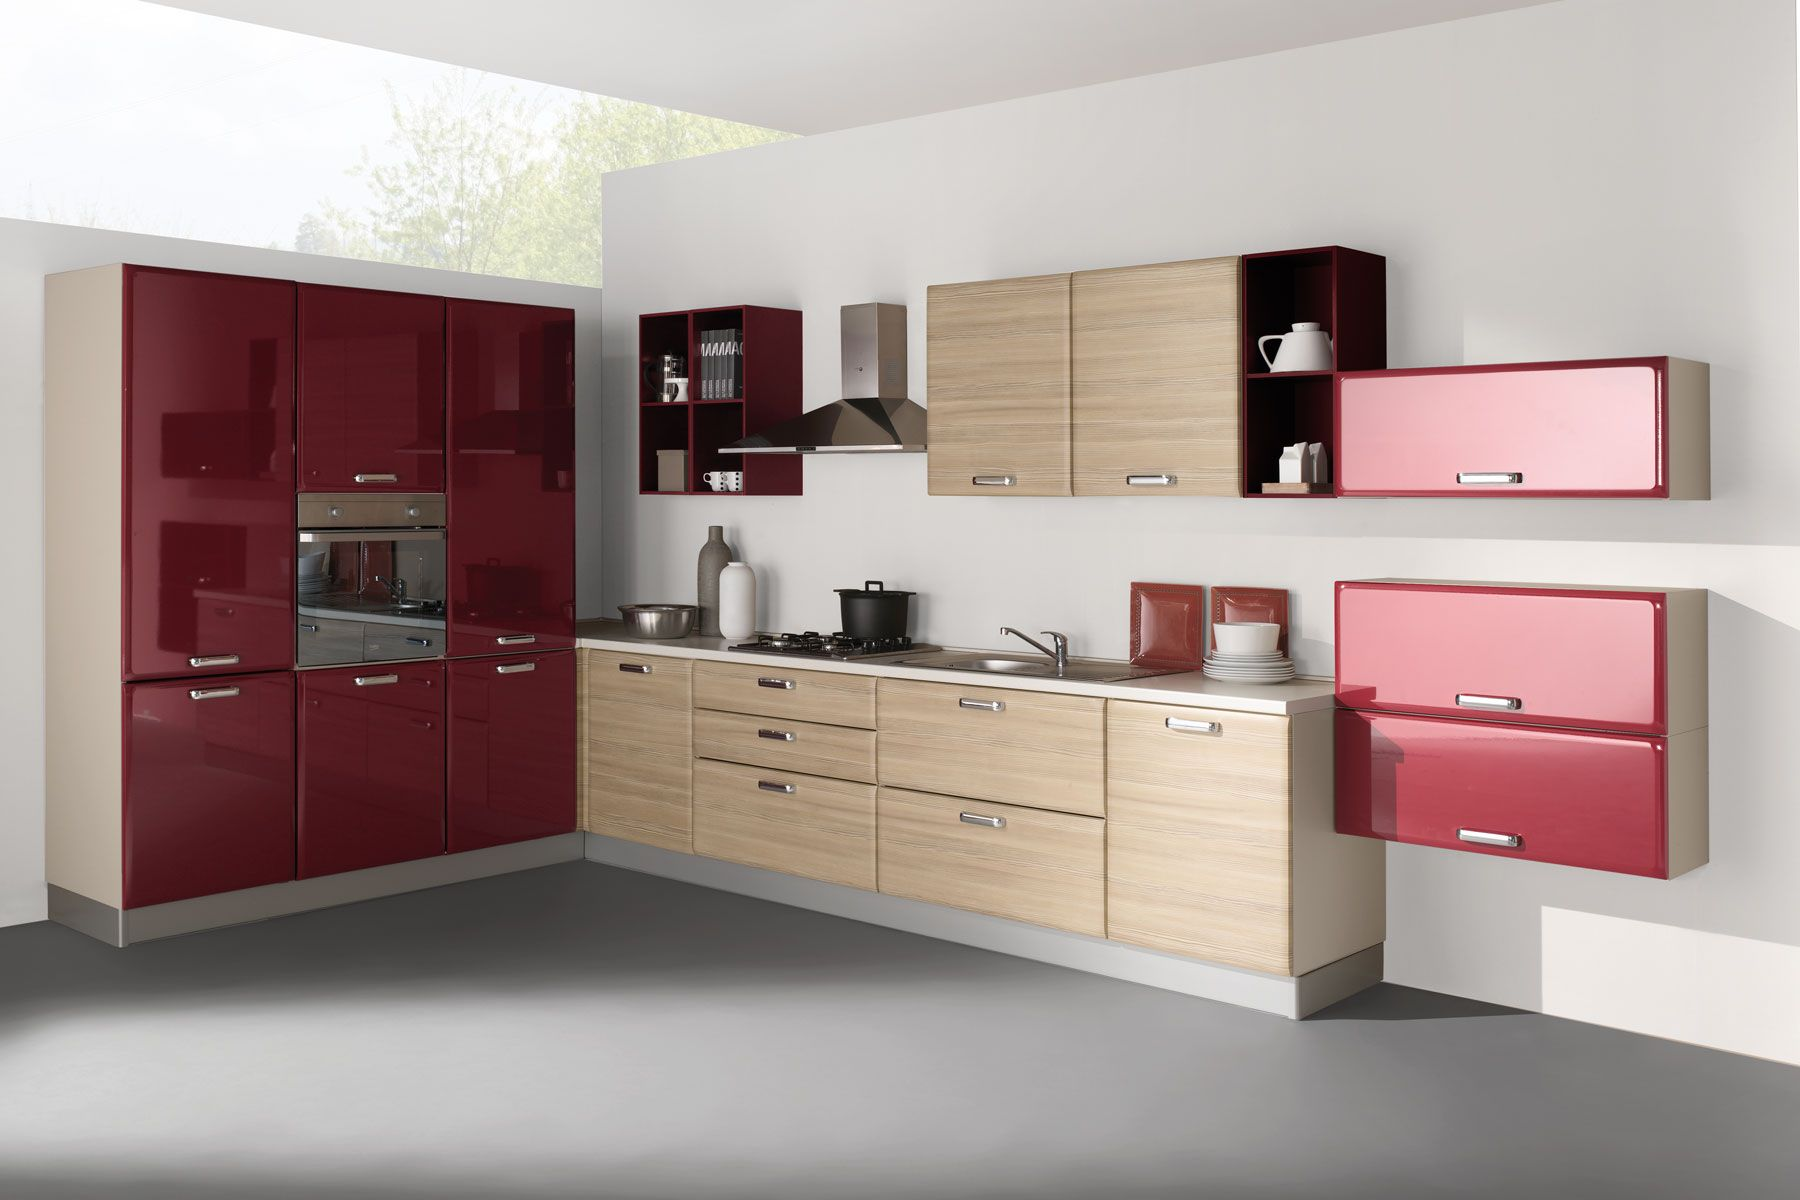 Cucine Moderne, Cucine Classiche, Cucine low cost made in ...